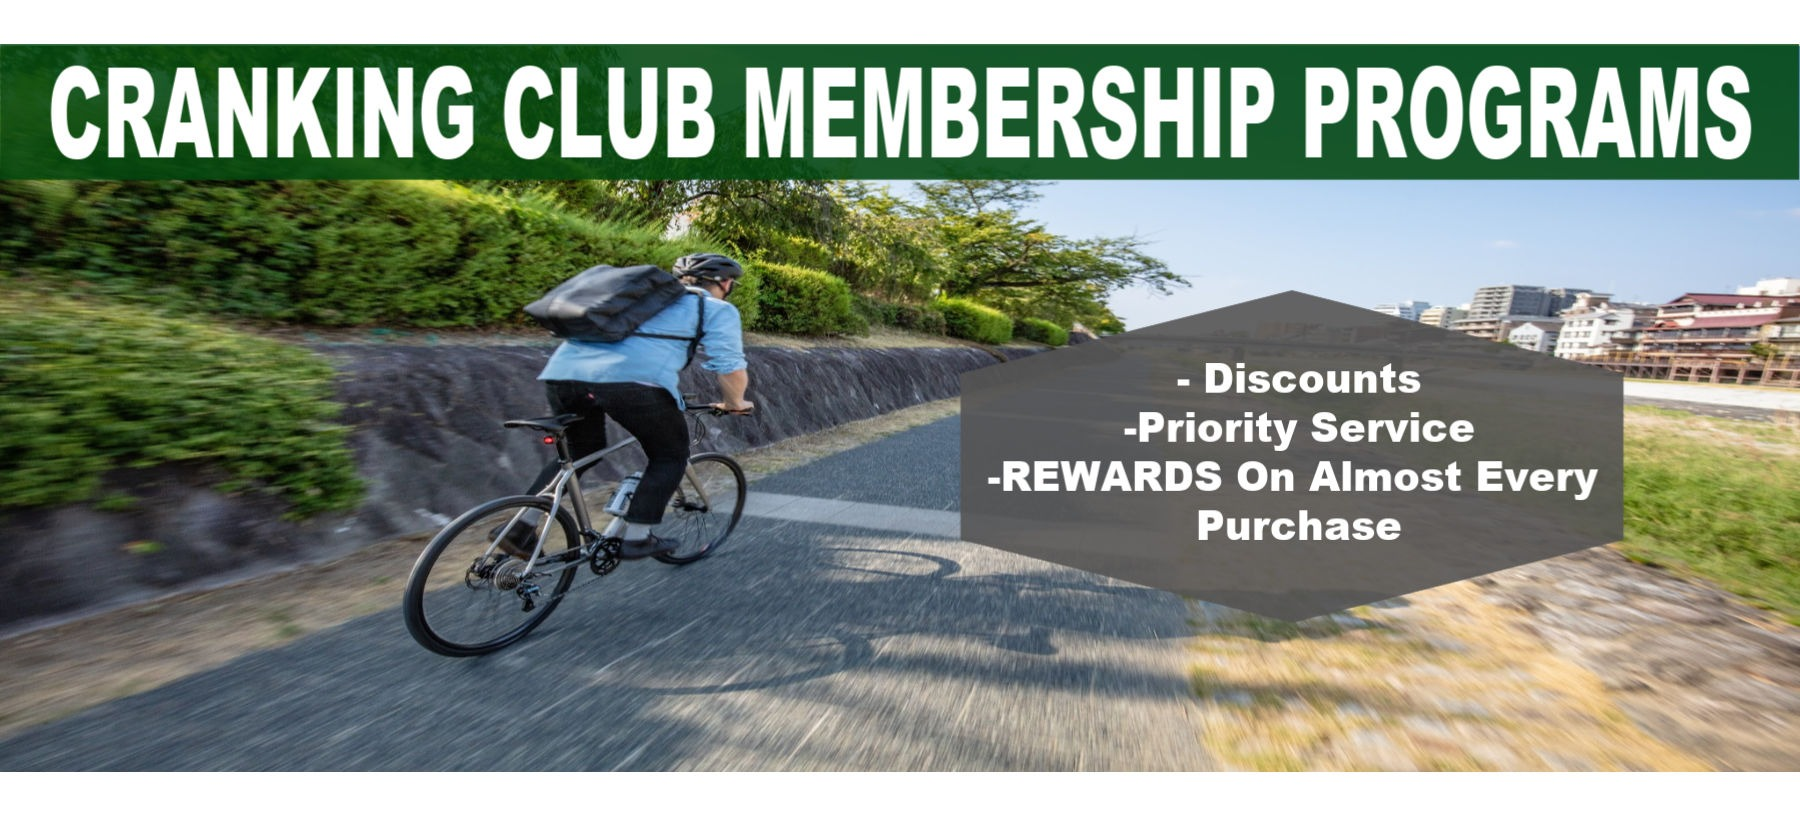 Crank Club Membership Program